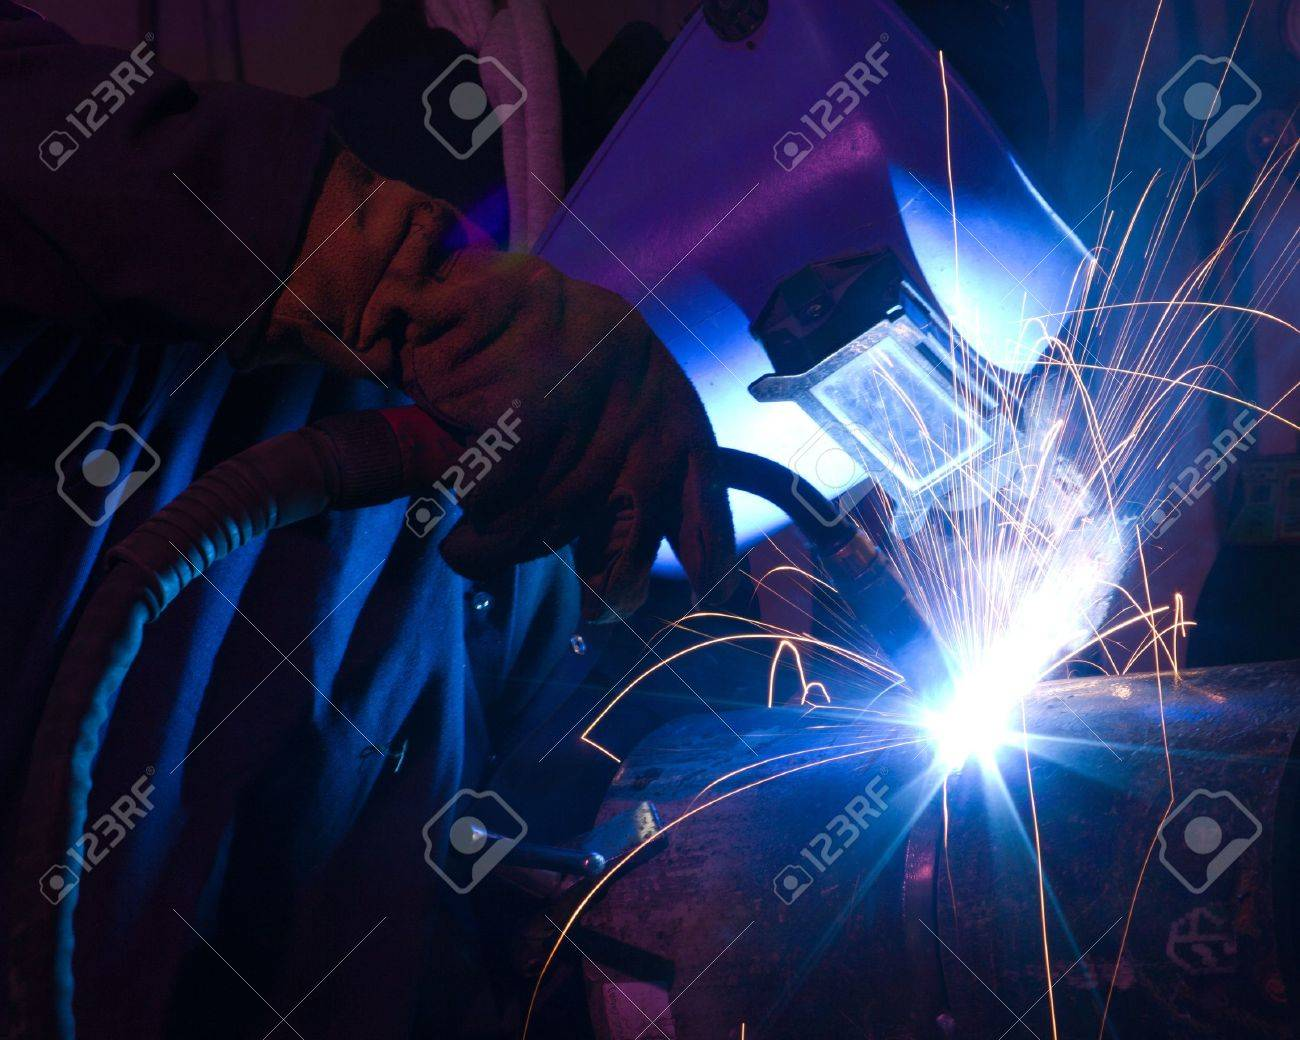 Welder uses torch to make sparks during manufacture of metal equipment. Stock Photo - 8384465